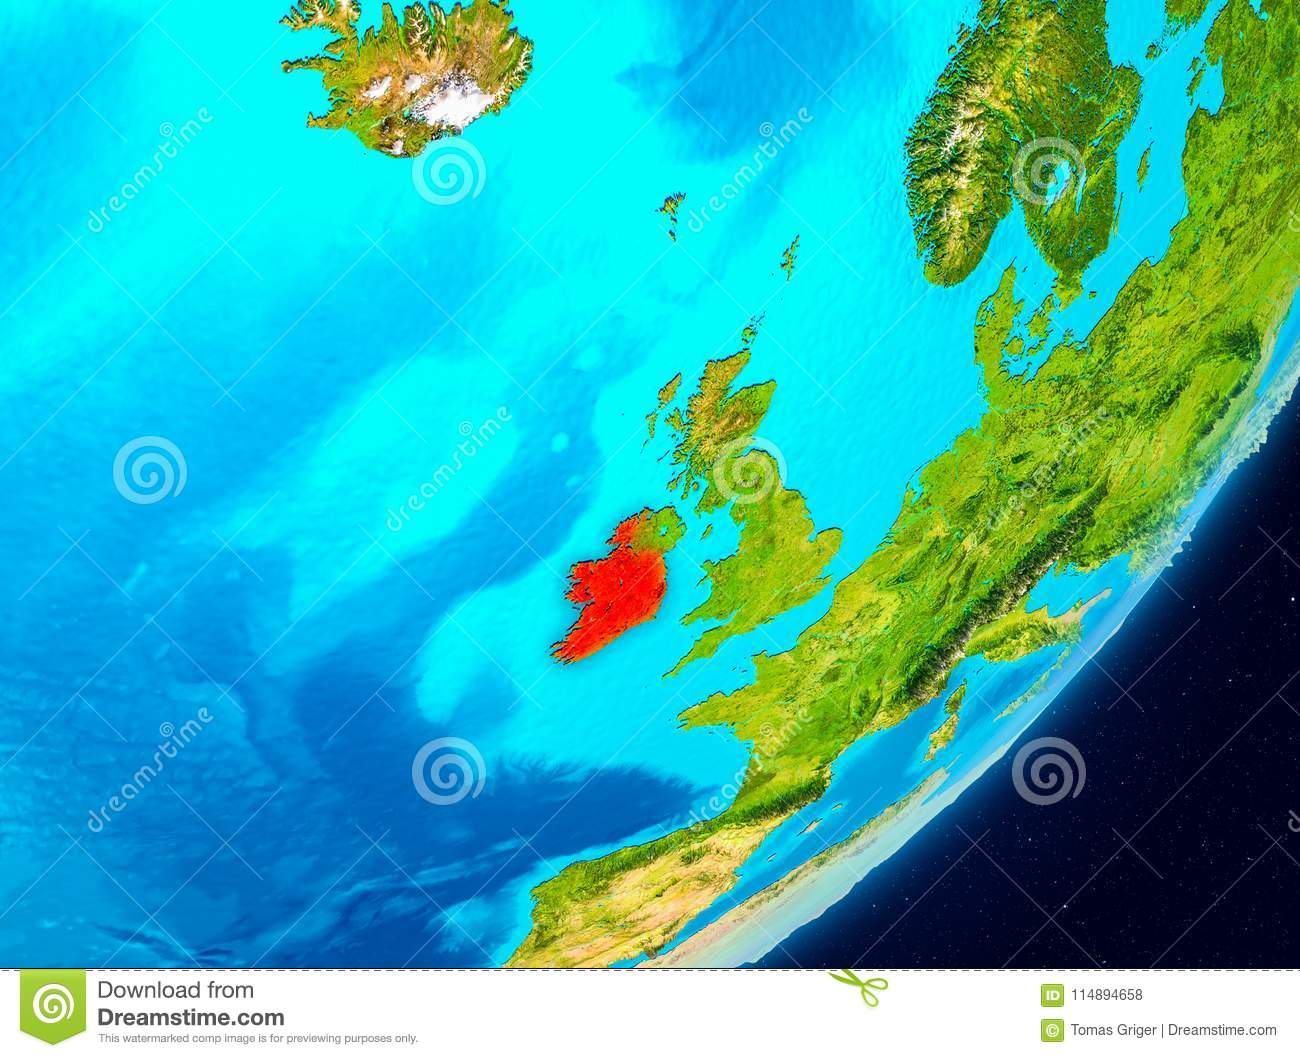 Orbit View Of Ireland In Red Stock Illustration ... on restaurants of ireland, satellite maps of homes, 18th century map of ireland, physical map of ireland, satellite maps of usa, geological survey of ireland, map map of ireland, political system of ireland, terrain map of ireland, road map of ireland, europe map of ireland, topographic map of ireland, weather of ireland, street map of ireland, overhead view of ireland, world map of ireland, statistics of ireland, gps of ireland, interactive map of ireland, geographical map of ireland,